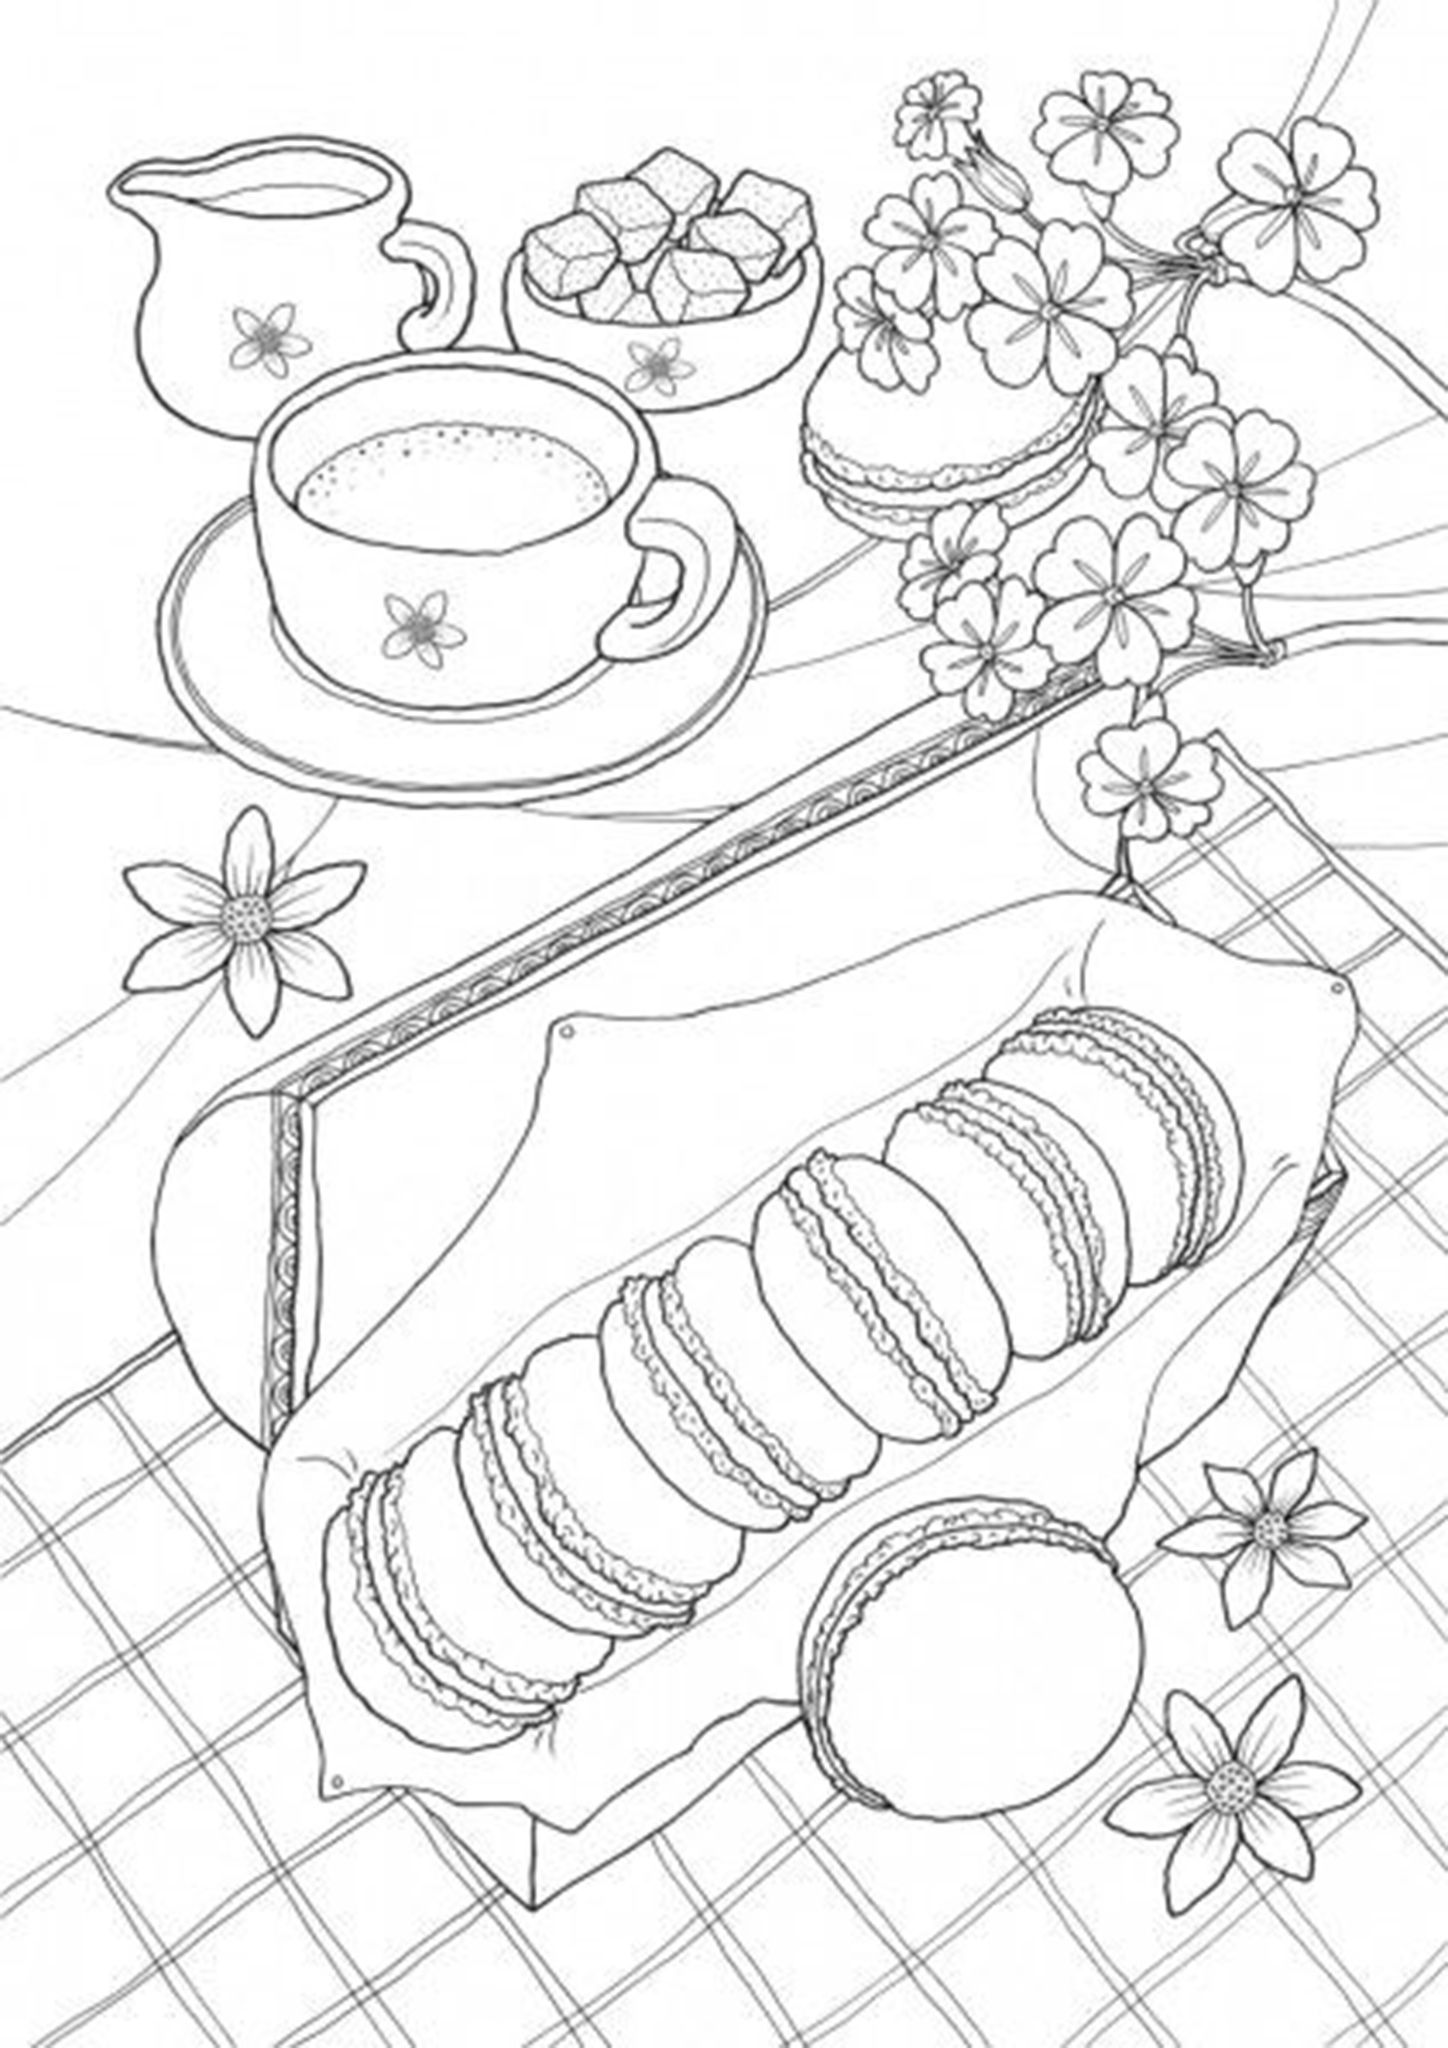 Free Easy To Print Food Coloring Pages Food Coloring Pages Coloring Pages Coloring Book Pages [ 2048 x 1448 Pixel ]